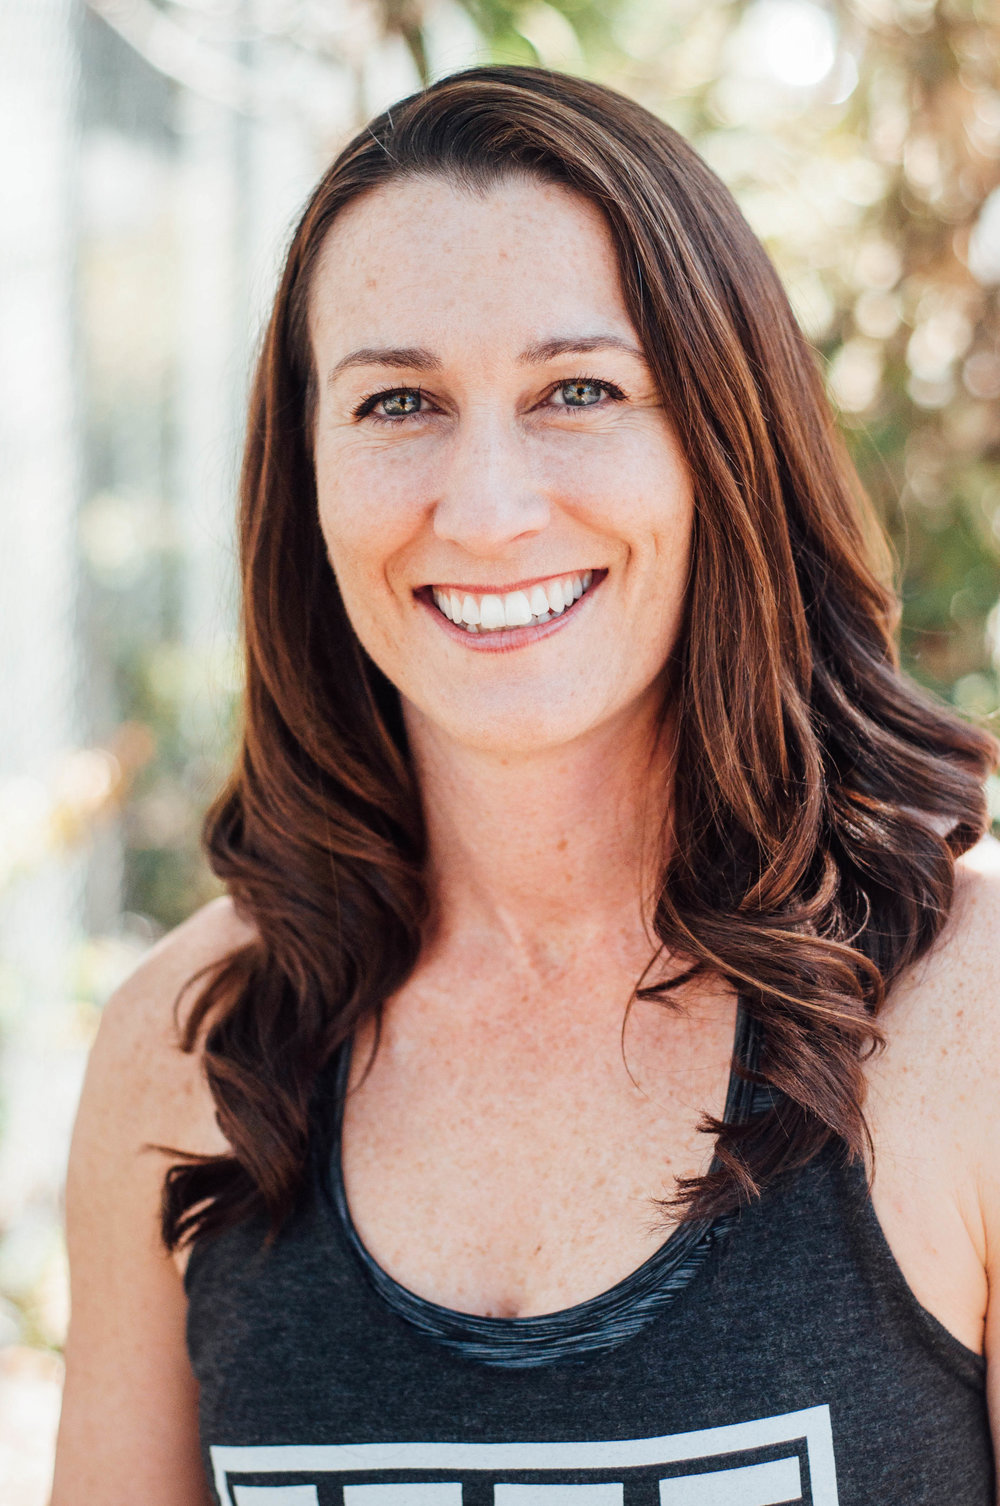 Cindy Koch - Southern California resident with She earned her BA from Concordia University, Irvine and an MA in exegetical theology from Concordia Seminary